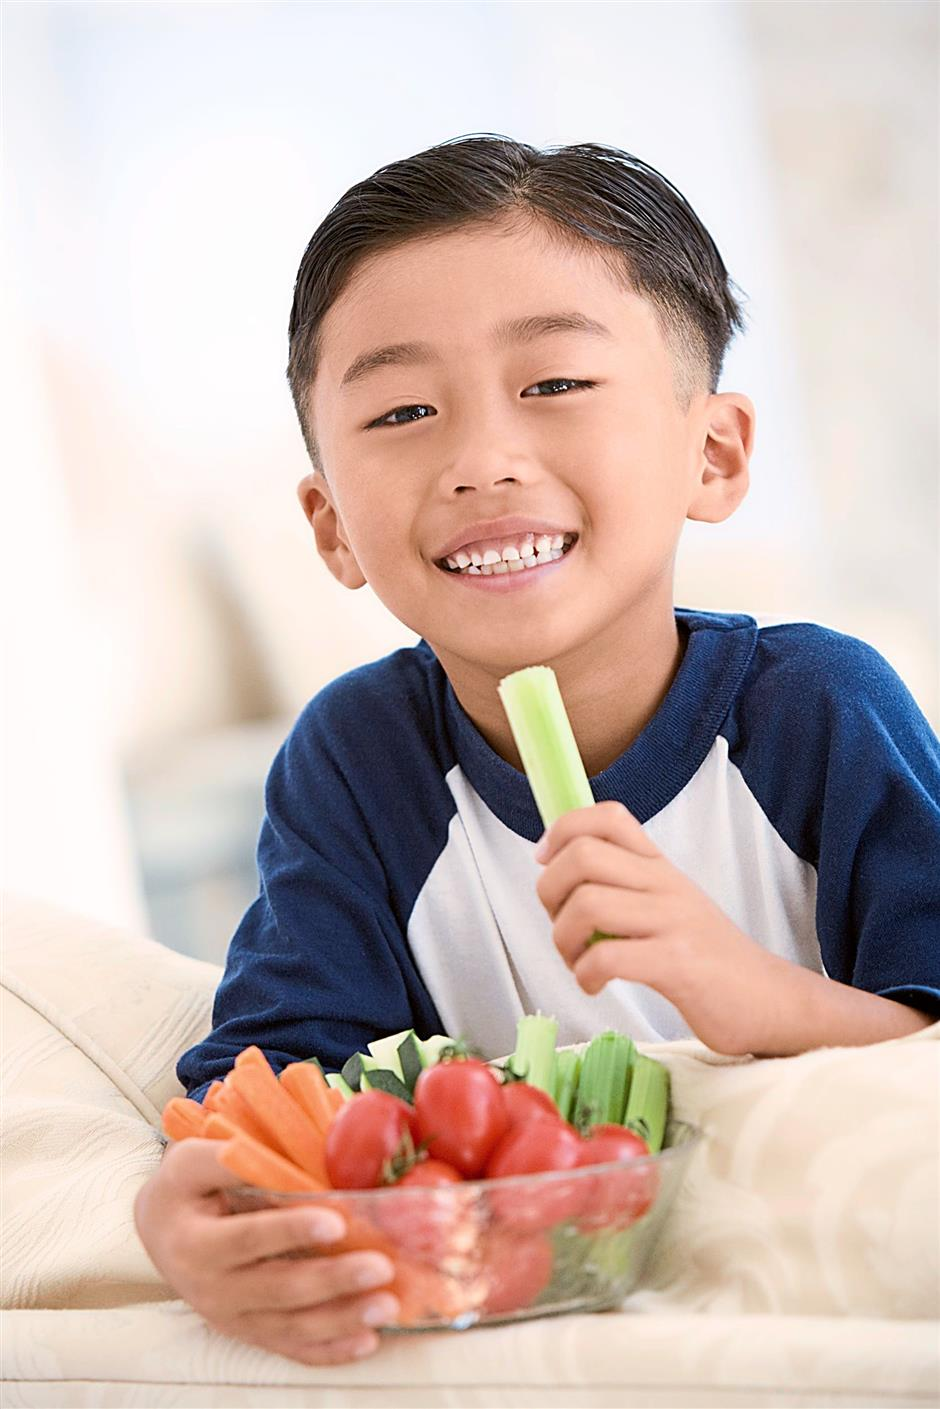 When children don't eat enough vegetables and fruits, they could suffer from hidden hunger, which is a deficiency in micronutrients.